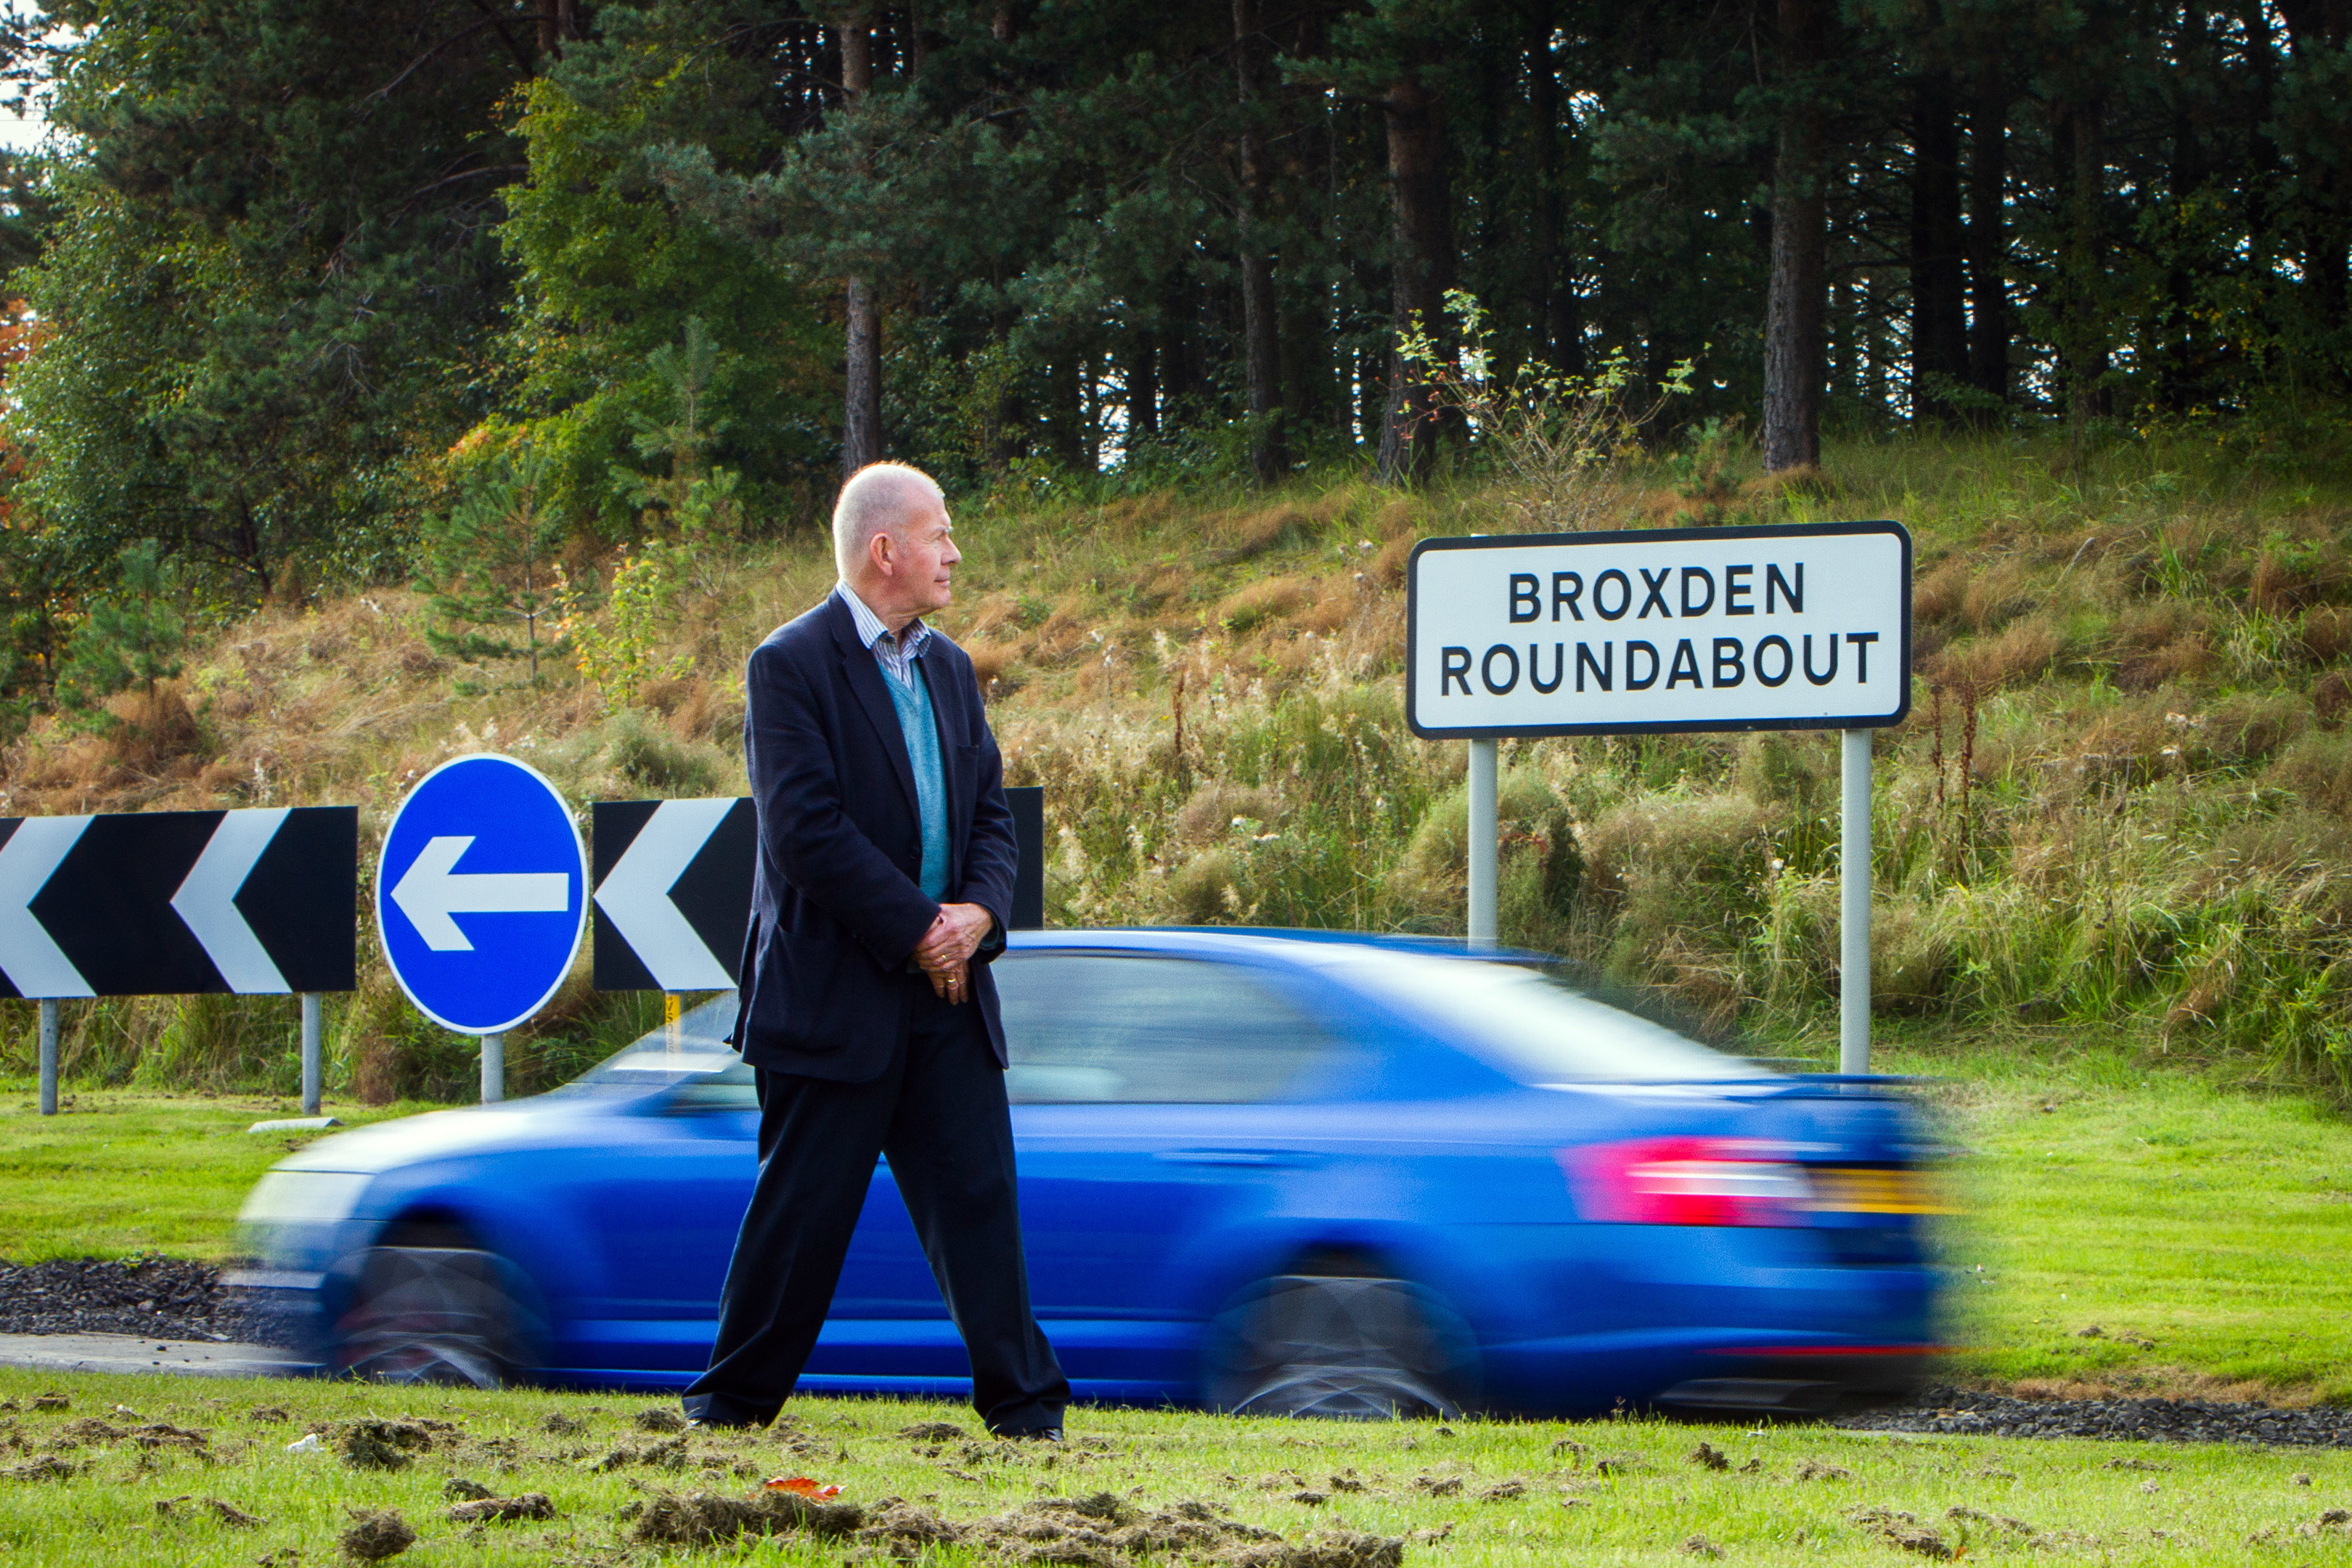 Councillor Willie Wilson at the Broxden Roundabout. he has previously expressed concerns about the layout.